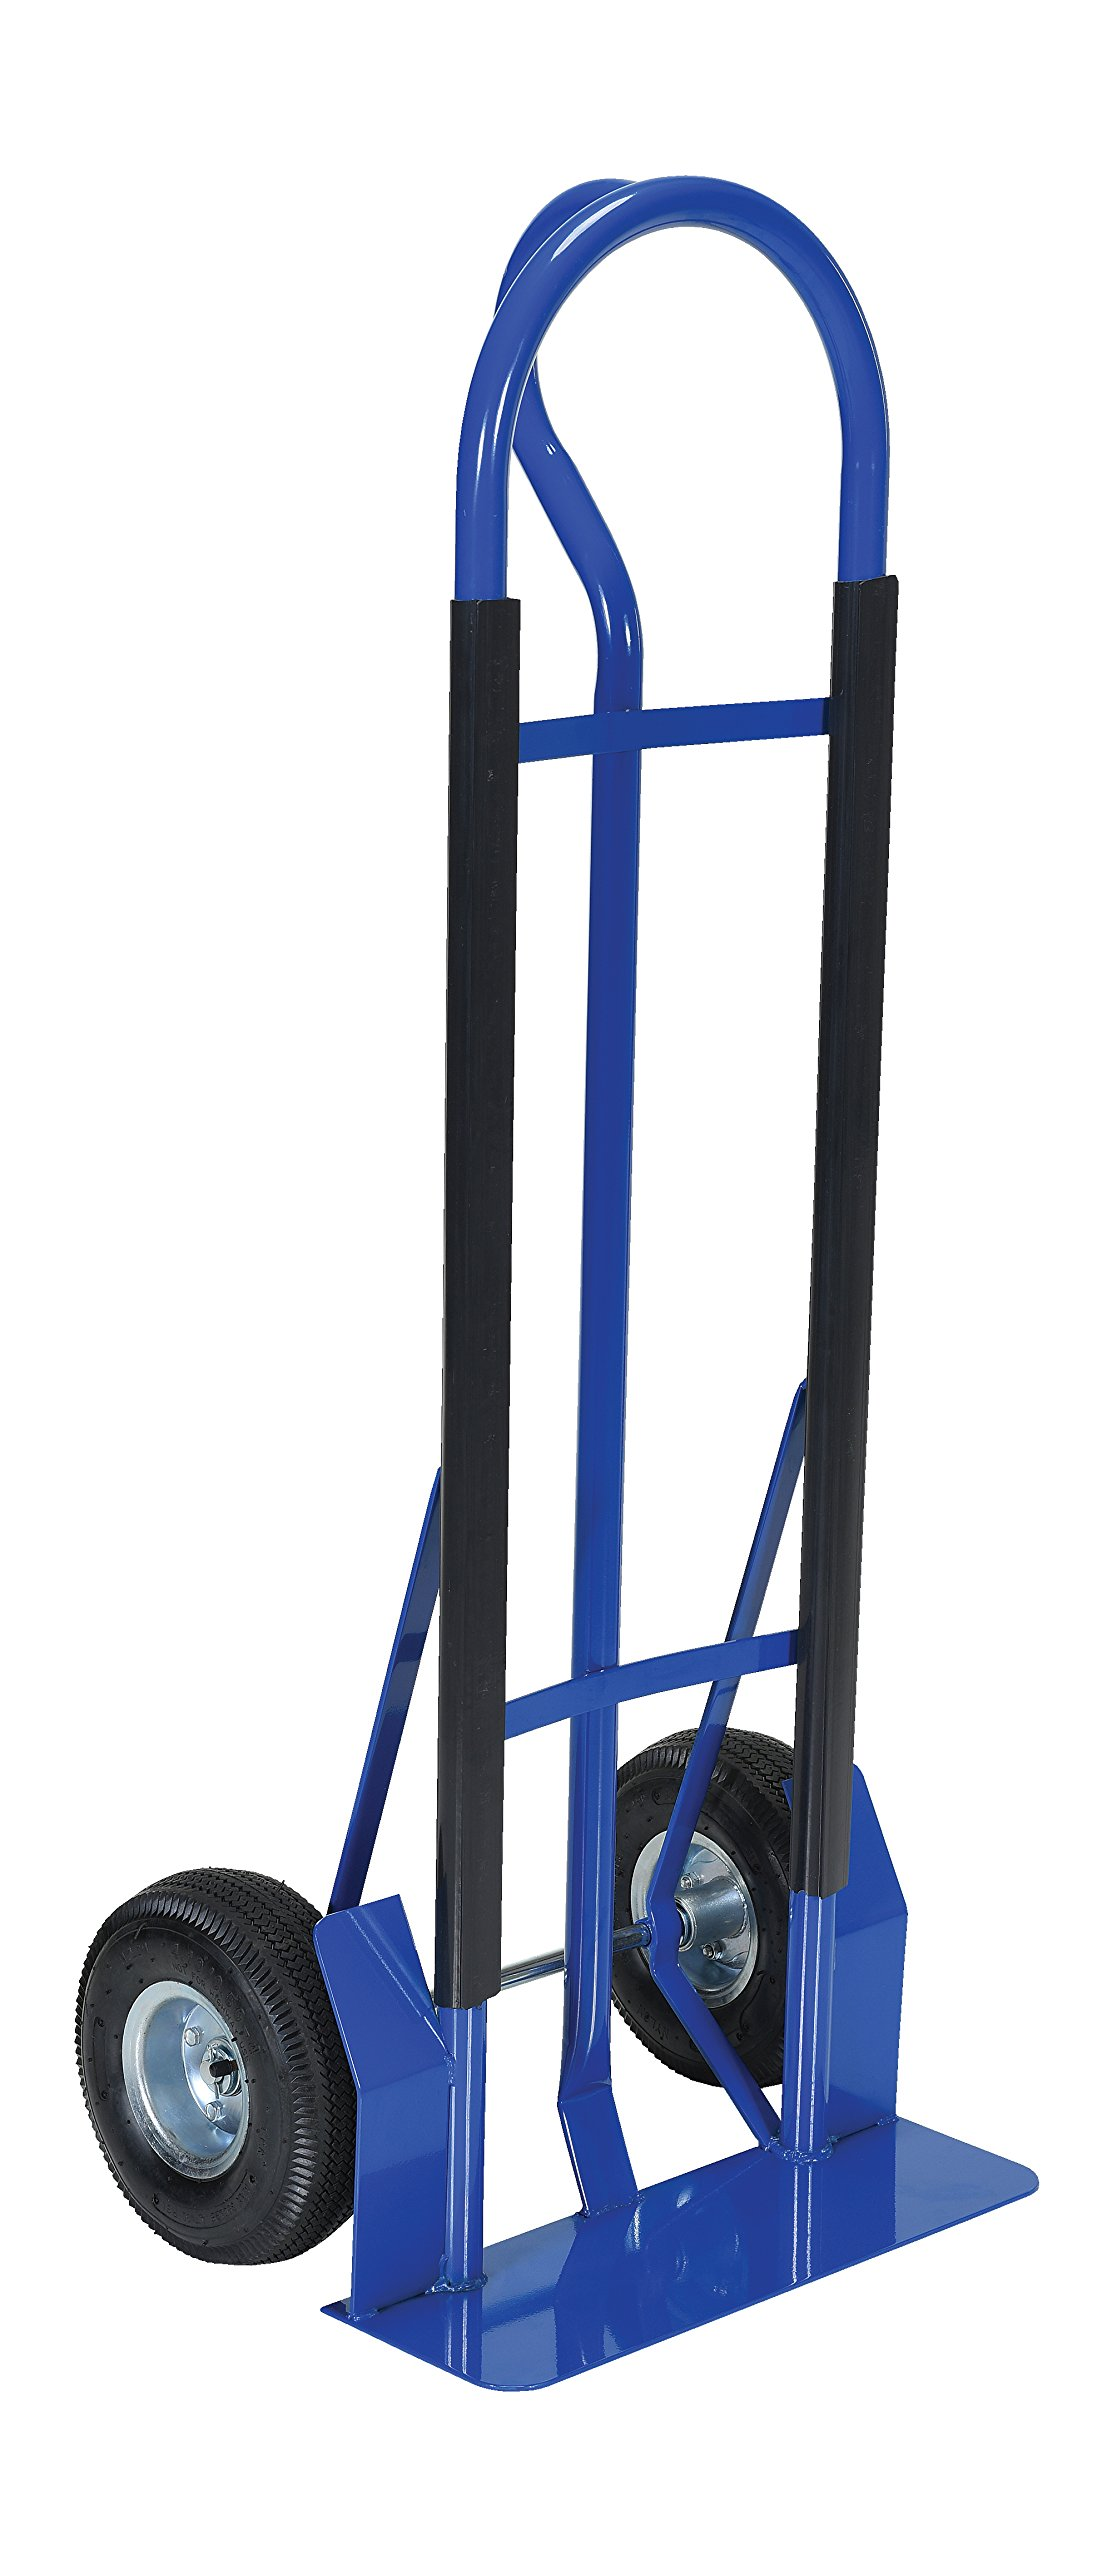 Vestil WIRE-D-SHD-PN Hand Truck with Pneumatic Wheels for Wire Reel Caddy, 19'' Length, 22'' Width, 52'' Height (WIRE-D Caddy Sold separetly B0027Y79GA)